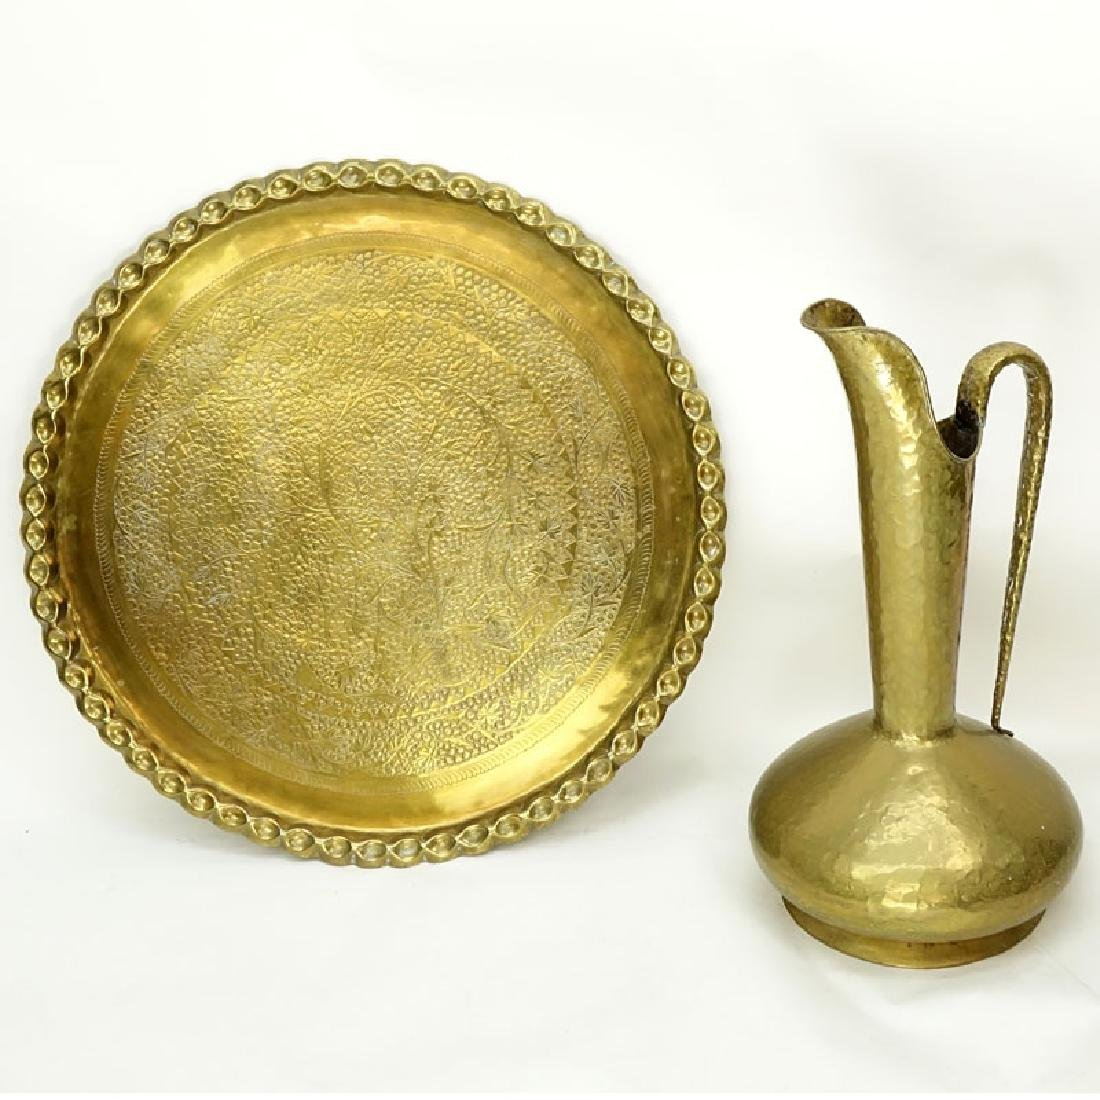 Grouping of Two (2): Large Brass Charger and Large